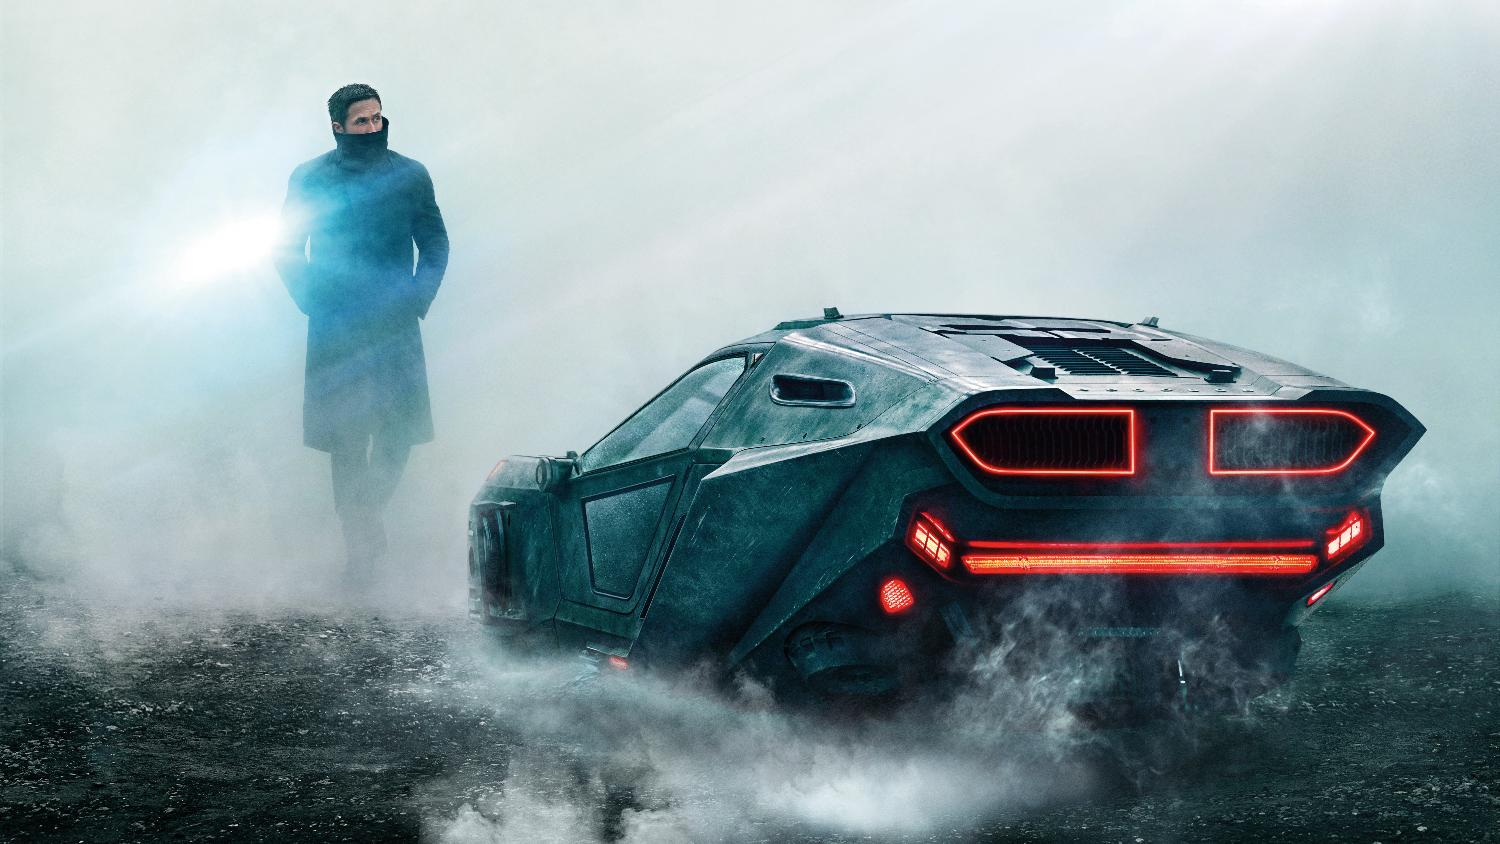 The Cool Cars Of Blade Runner Confidential Costa Rica - Cool cars images